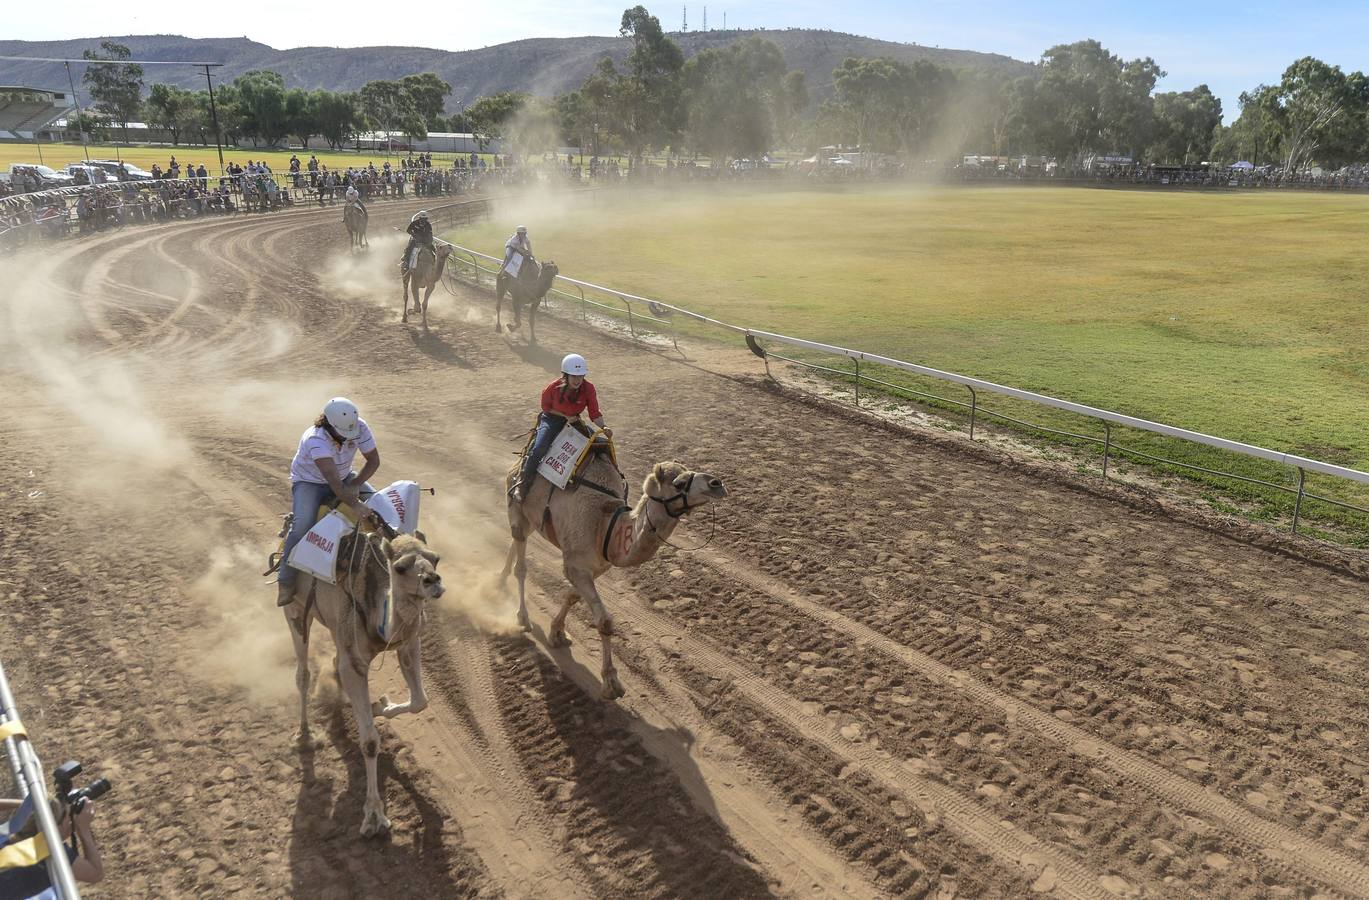 . Alice Springs (Australia), 09/07/2016.- Participants race during the Alice Springs Camel Cup camel races held at Blatherskite Park, in Alice Springs, the Northern Territory, Australia, 09 July 2016. The annual camel races that see people come from all over Australia is a family and fundraiser event well known for its unpredictable and entertaining camels as well as the brave and crazy riders. EFE/EPA/STEVE STRIKE AUSTRALIA AND NEW ZEALAND OUT